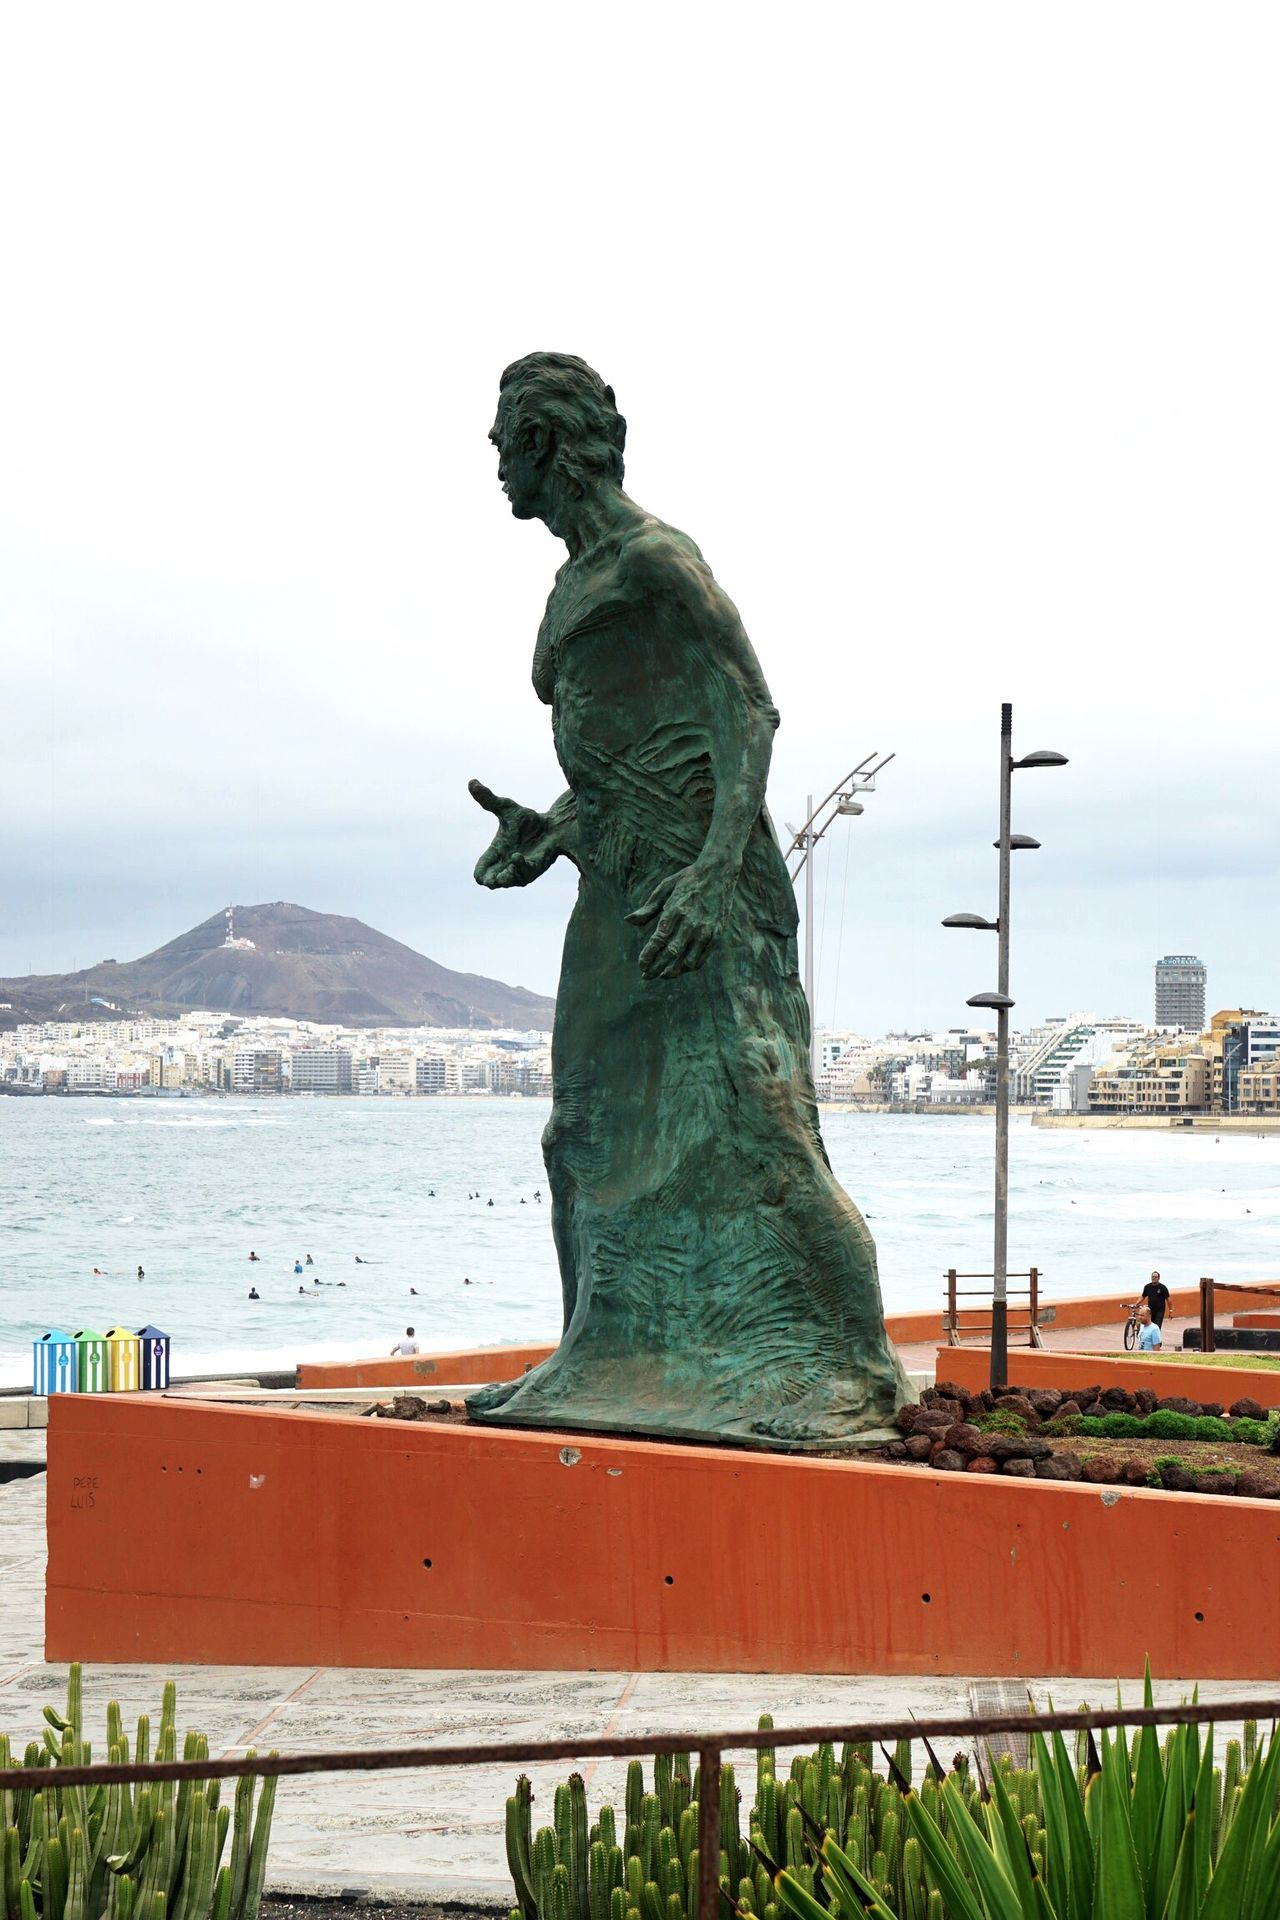 Statue Human Representation Sculpture Water Art And Craft Art Creativity Sky Park - Man Made Space Day In Front Of Sea Outdoors Memories Tranquility No People Stone Material Gran Canaria Las Palmas De Gran Canaria Las Palmas